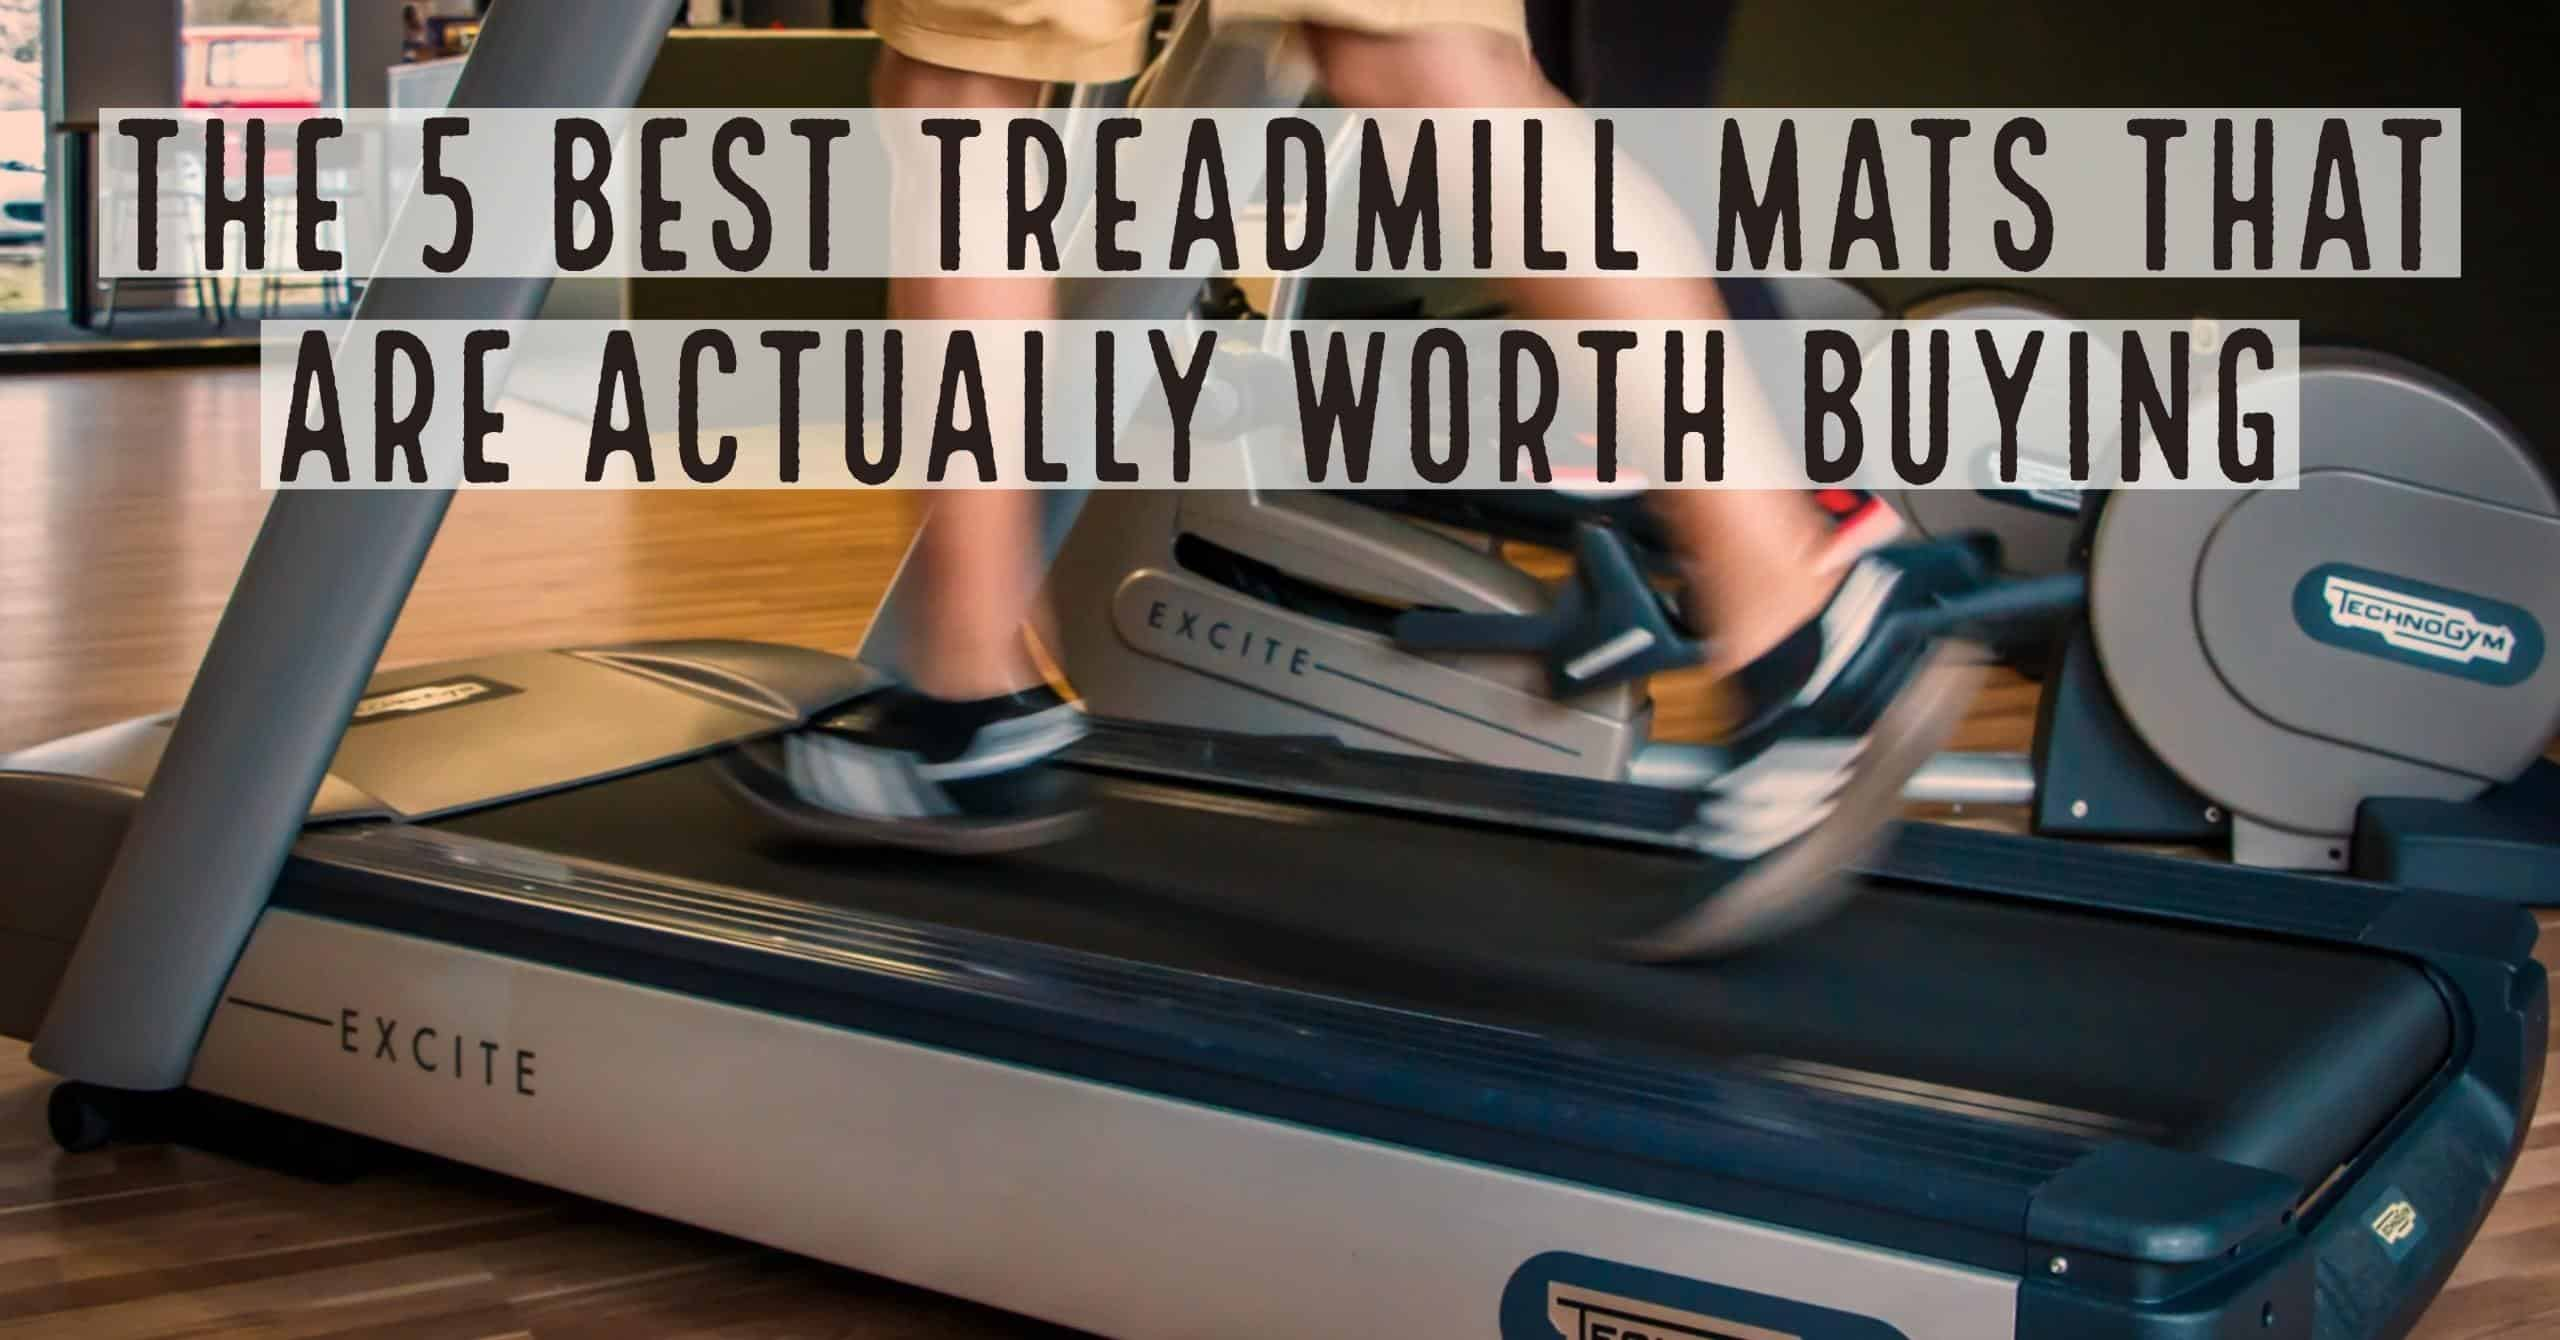 The 5 Best Treadmill Mats That Are Actually Worth Buying